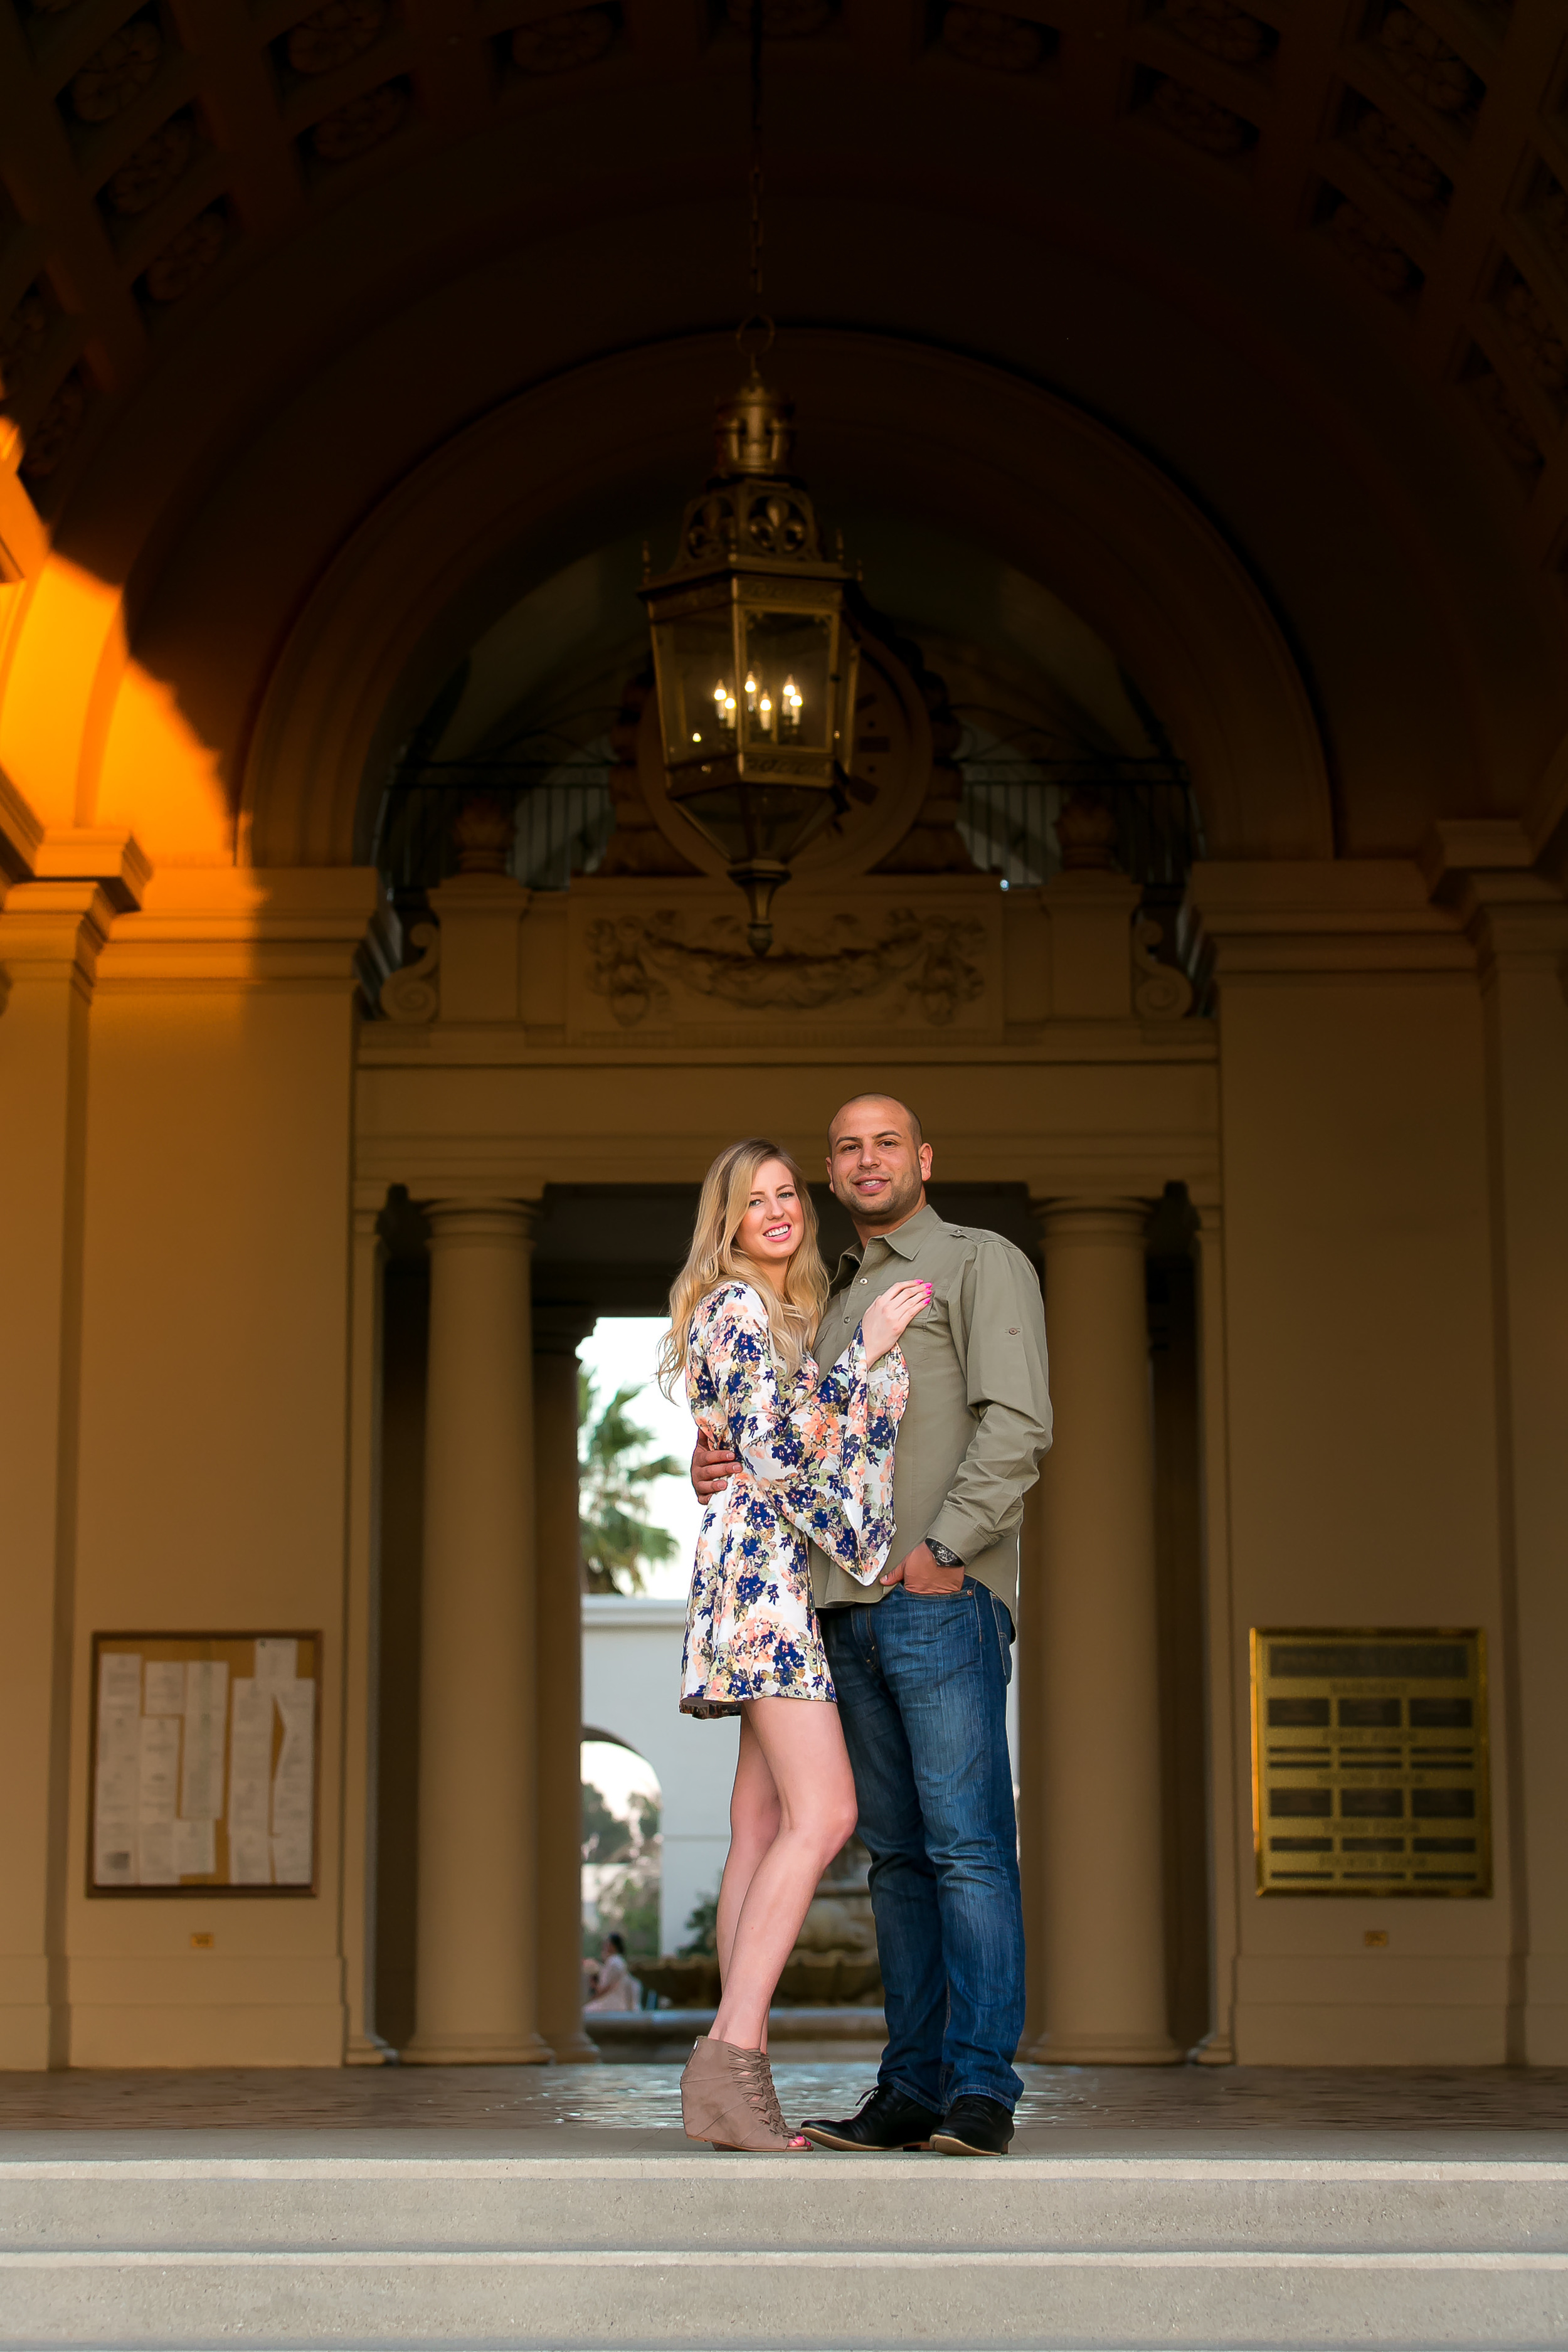 pasadena-city-hall-engagement-session_017.jpg